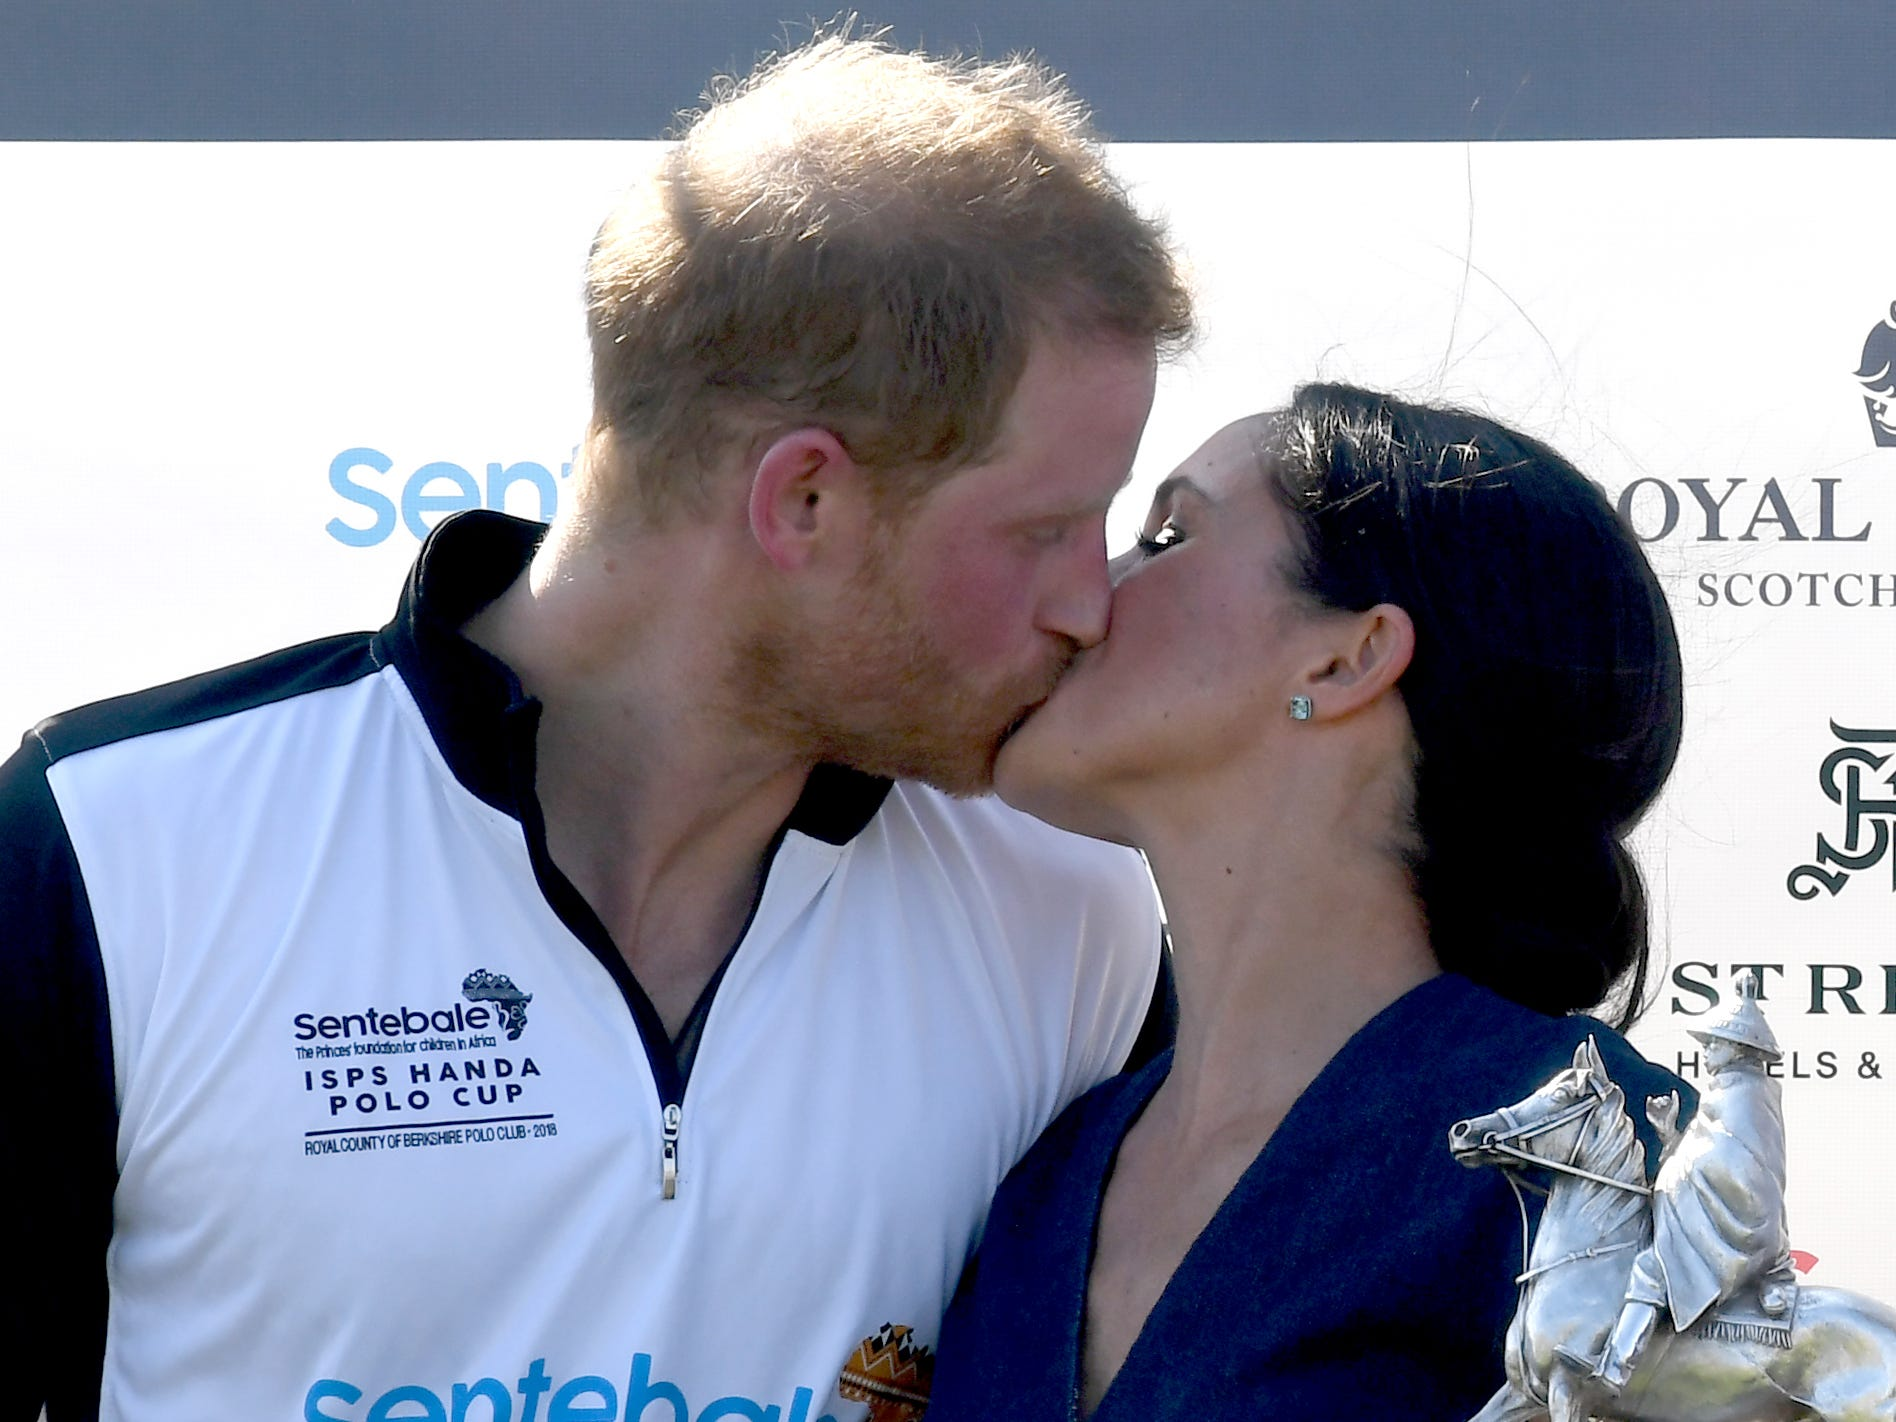 A kiss on the lips, even! Prince Harry and Duchess Meghan of Sussex smooch as they pose with the trophy after Harry's polo match at the Royal County of Berkshire Polo Club on July 26, 2018 in Windsor.